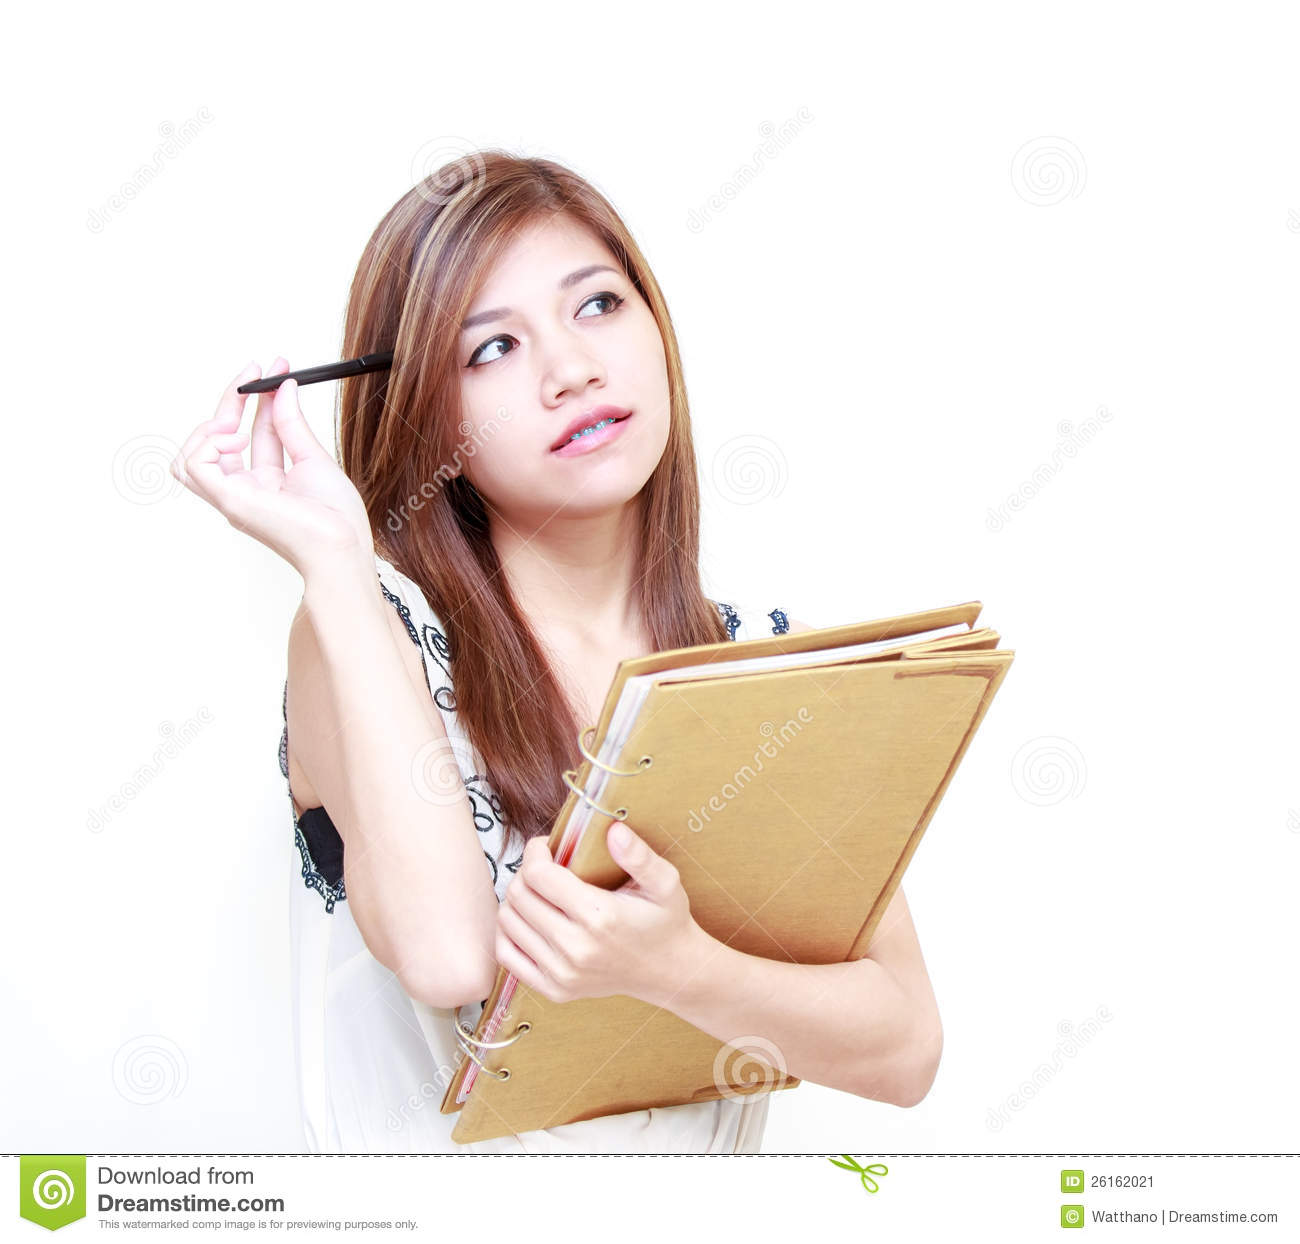 Effective cool essay reviewingwriting Secrets Around The Usa